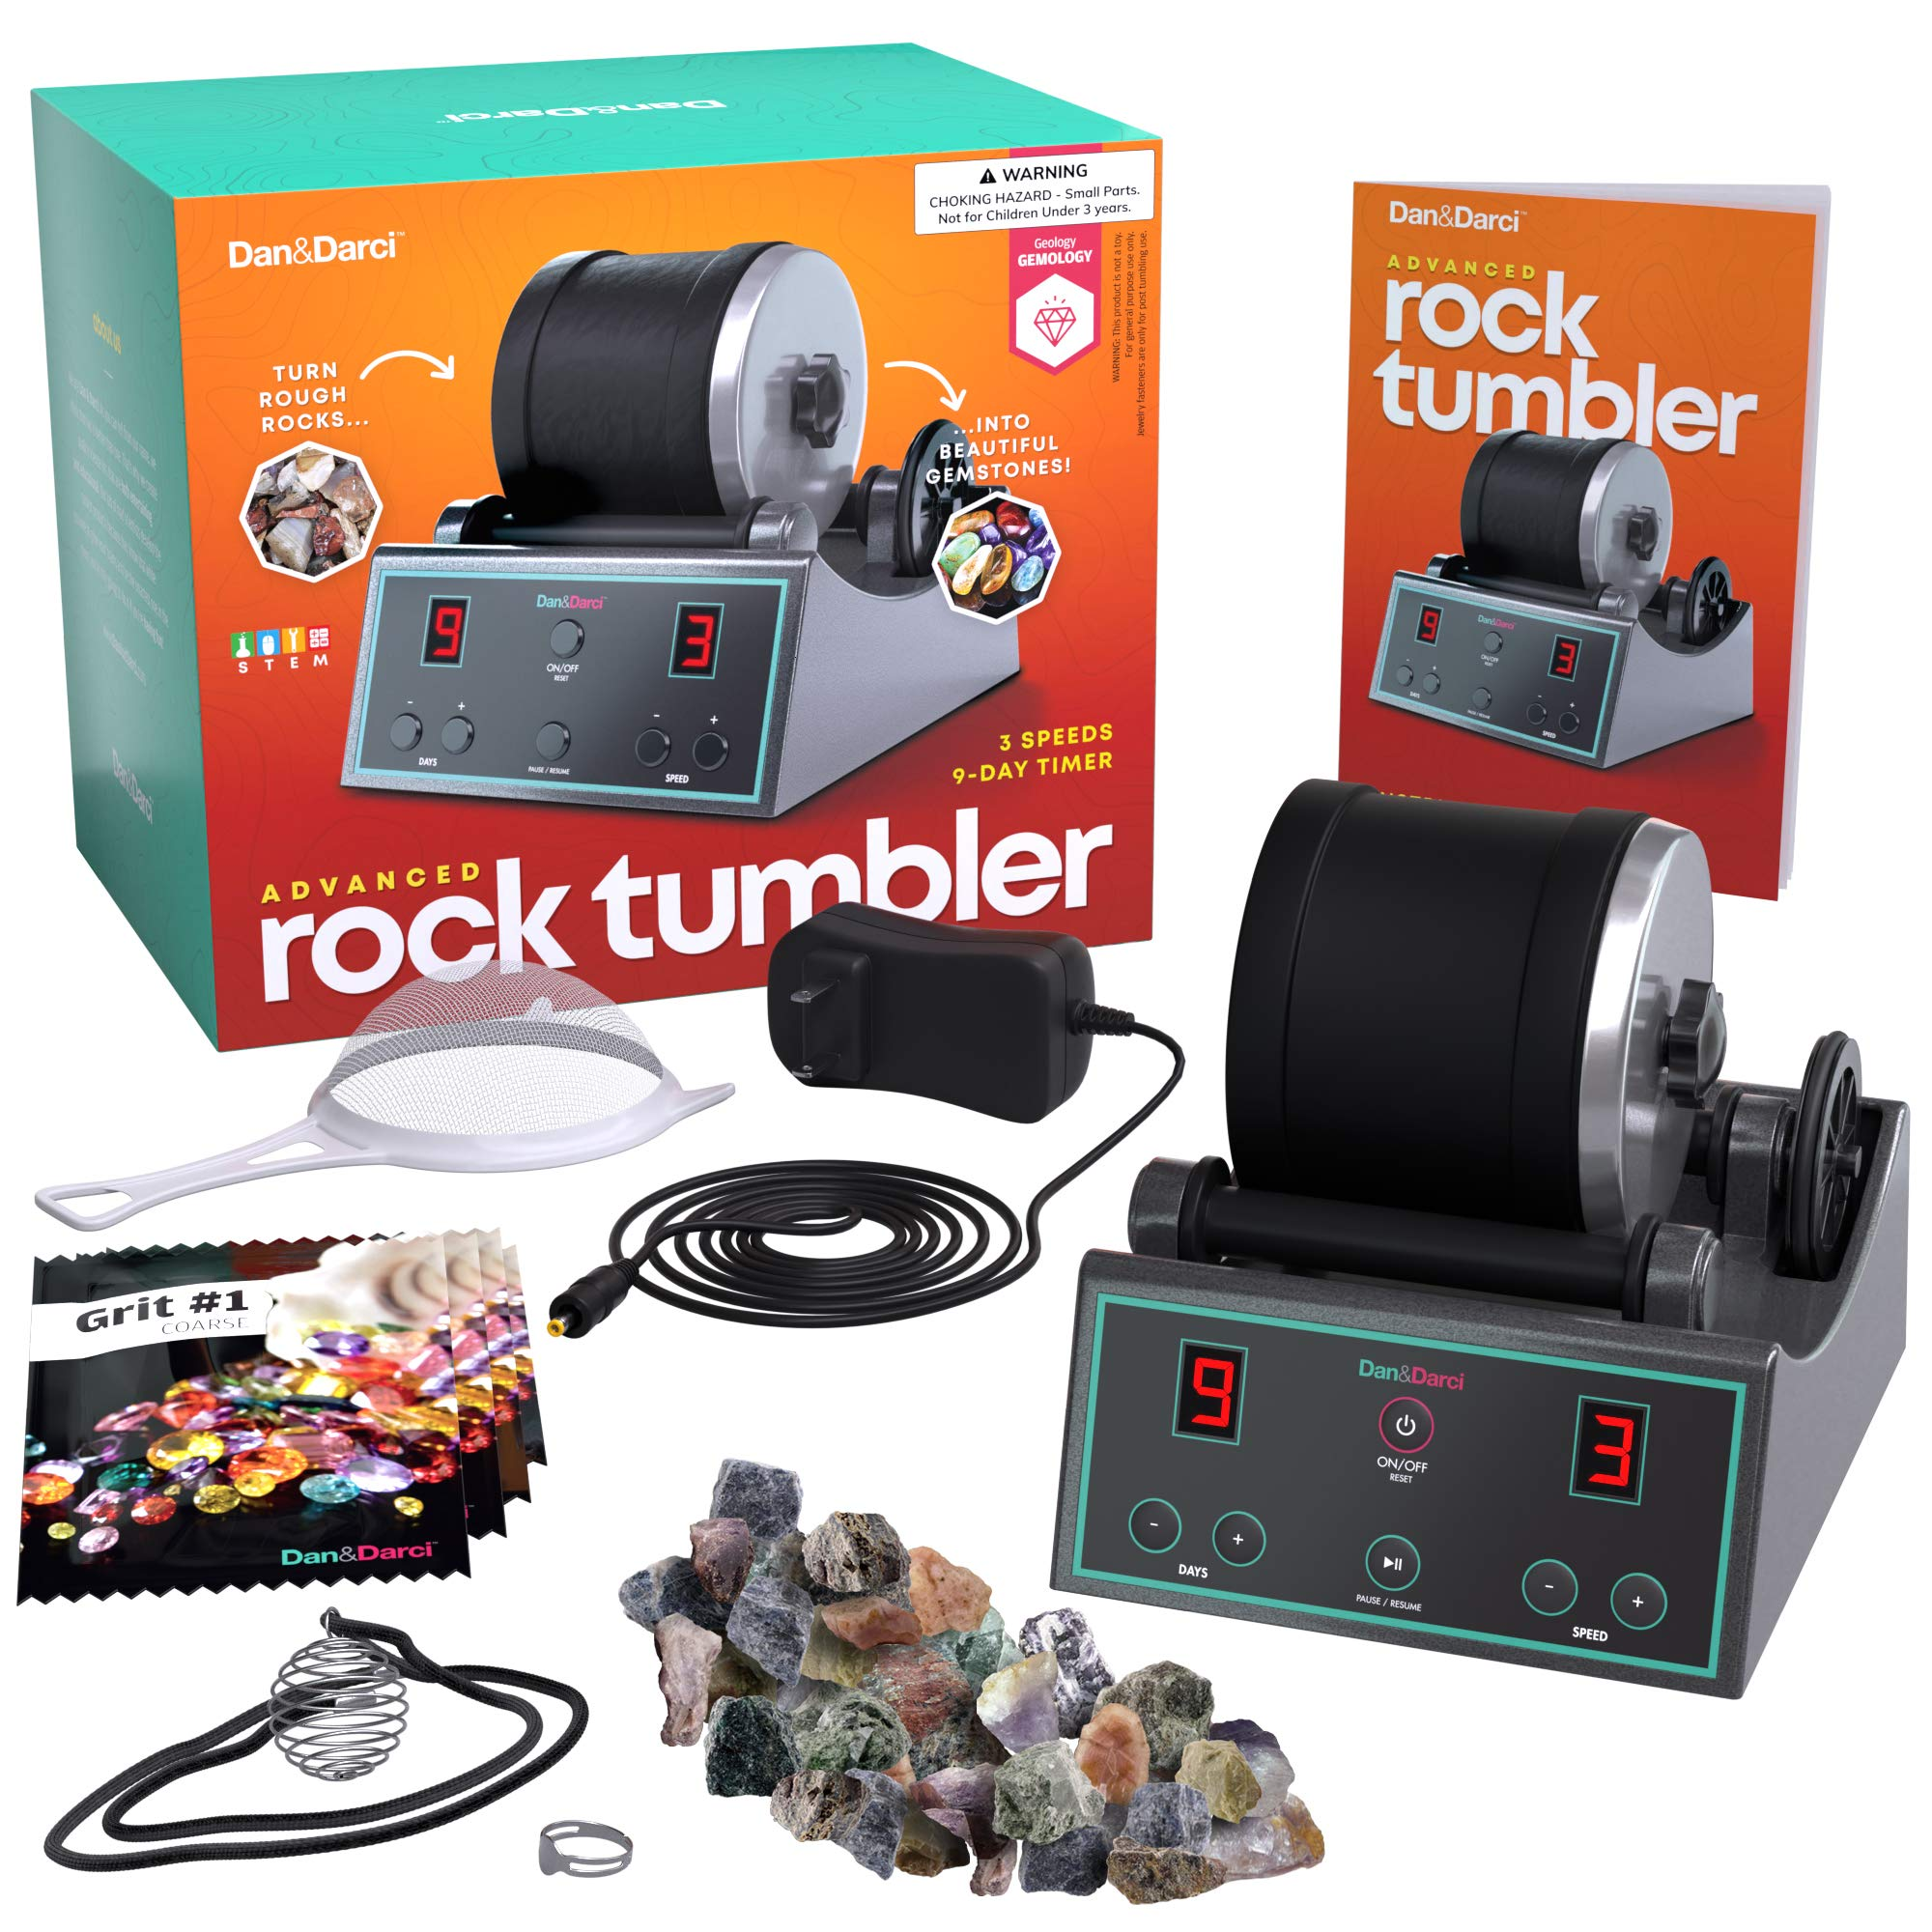 Advanced Professional Rock Tumbler Kit - with Digital 9-day timer & 3-speed polisher settings - Turn Rough Rocks into Beautiful Gems : Great Science Kit & STEM Gift for all ages : Geology & Mineralogy by Dan&Darci